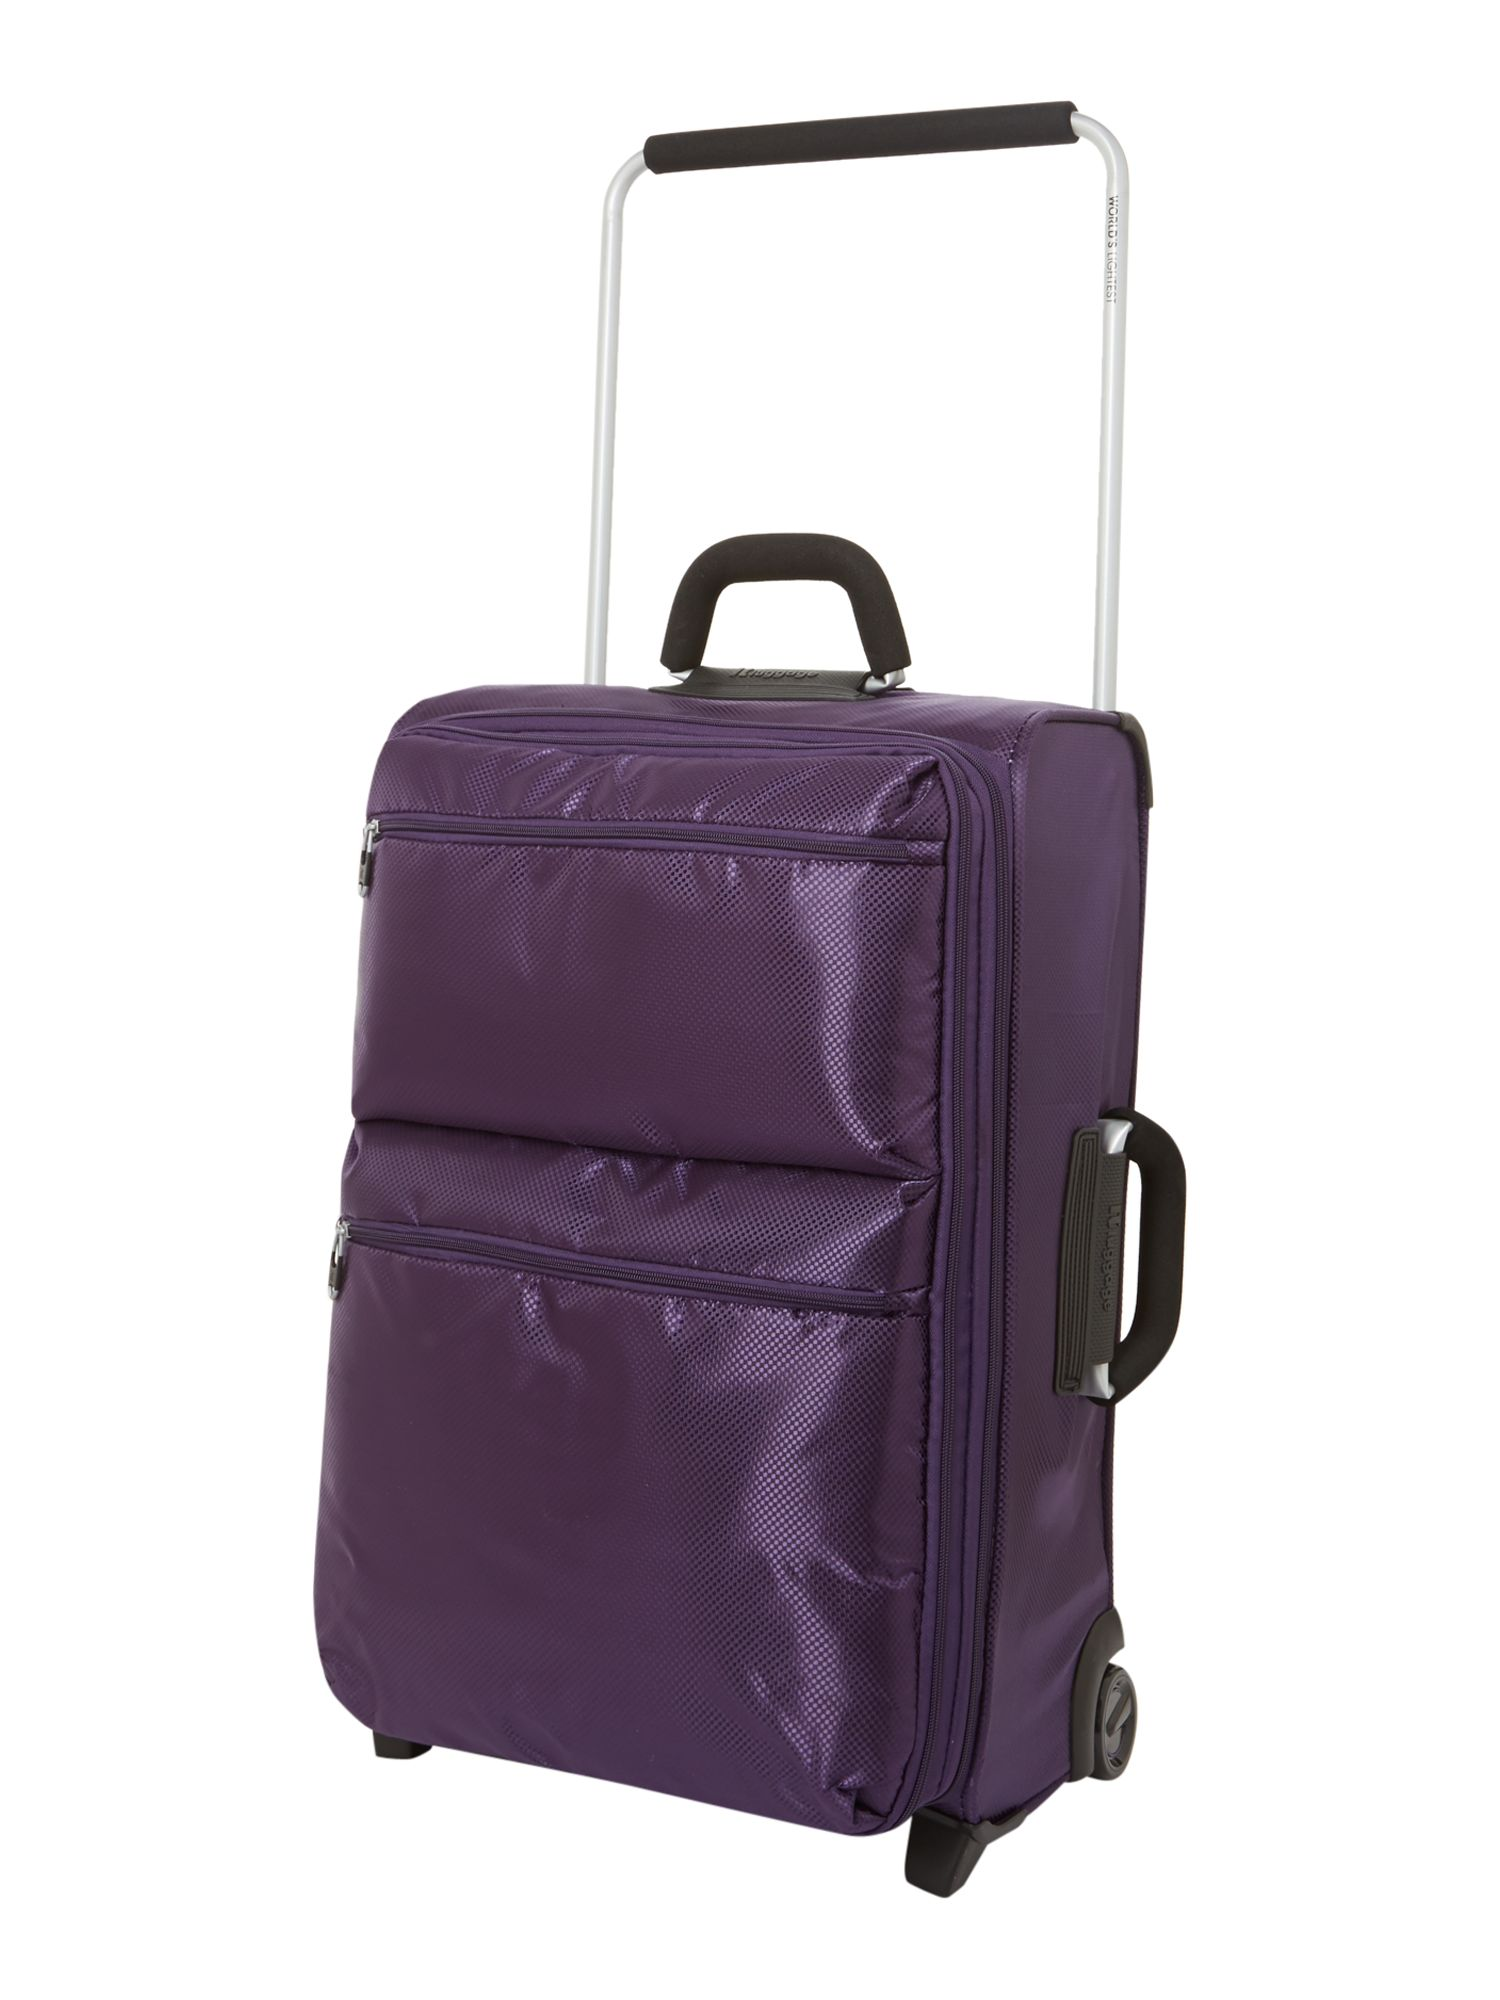 IT02 purple luggage range